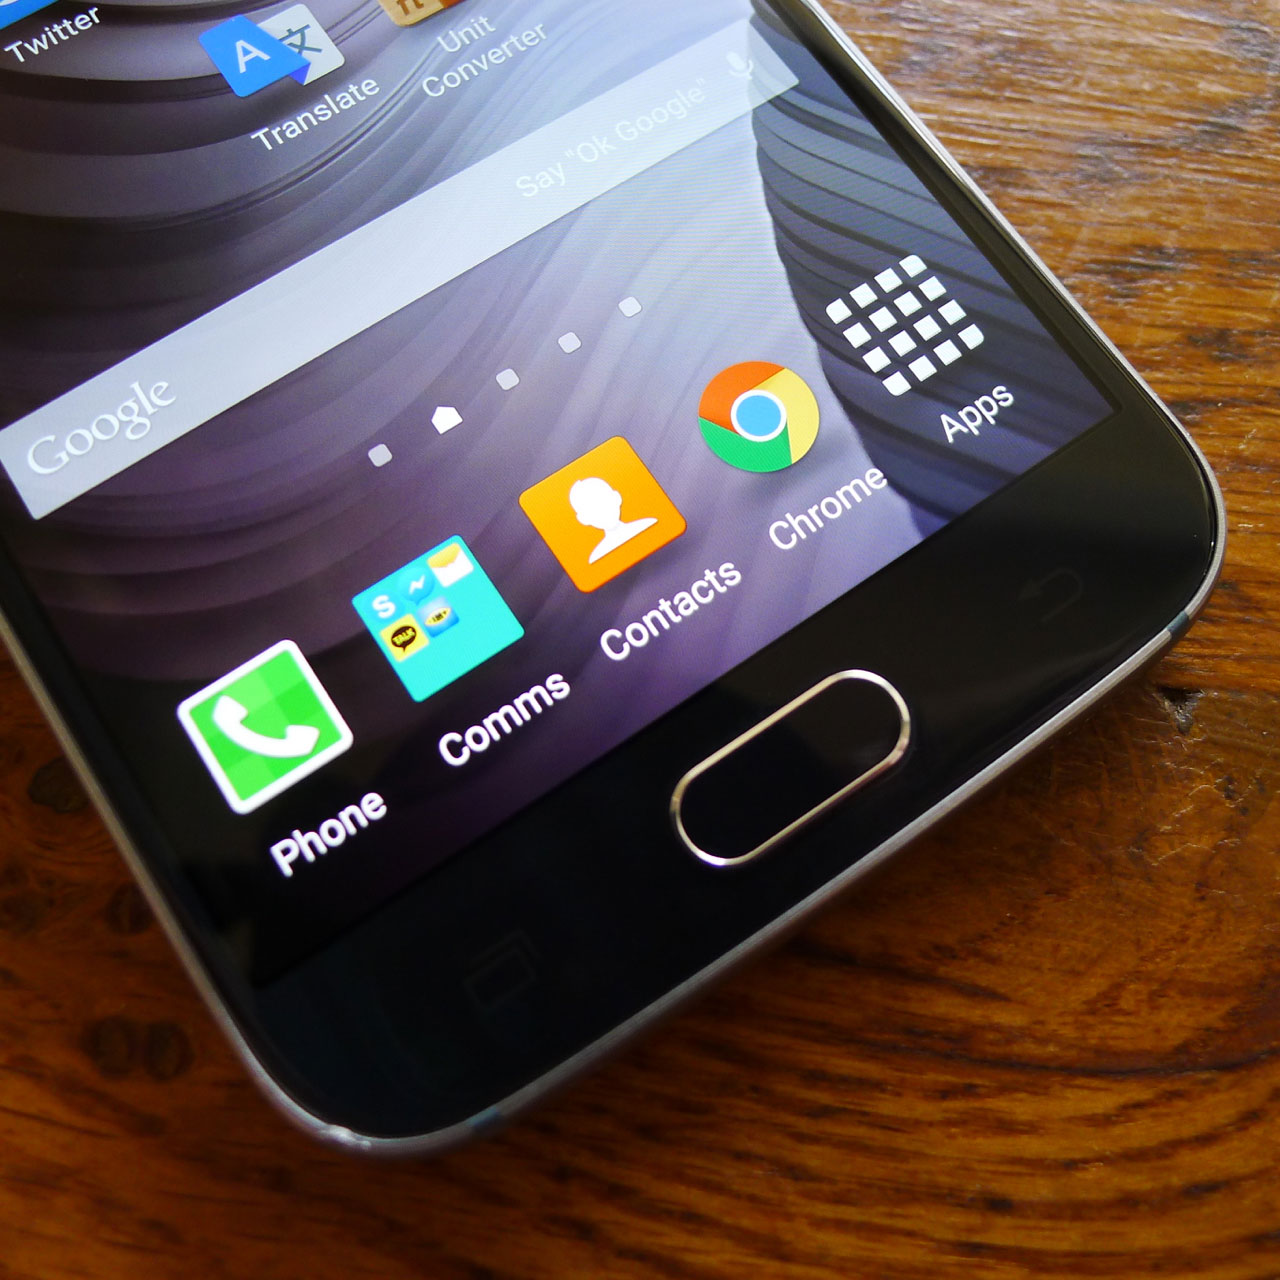 Ditching My iPhone For The Samsung Galaxy S6